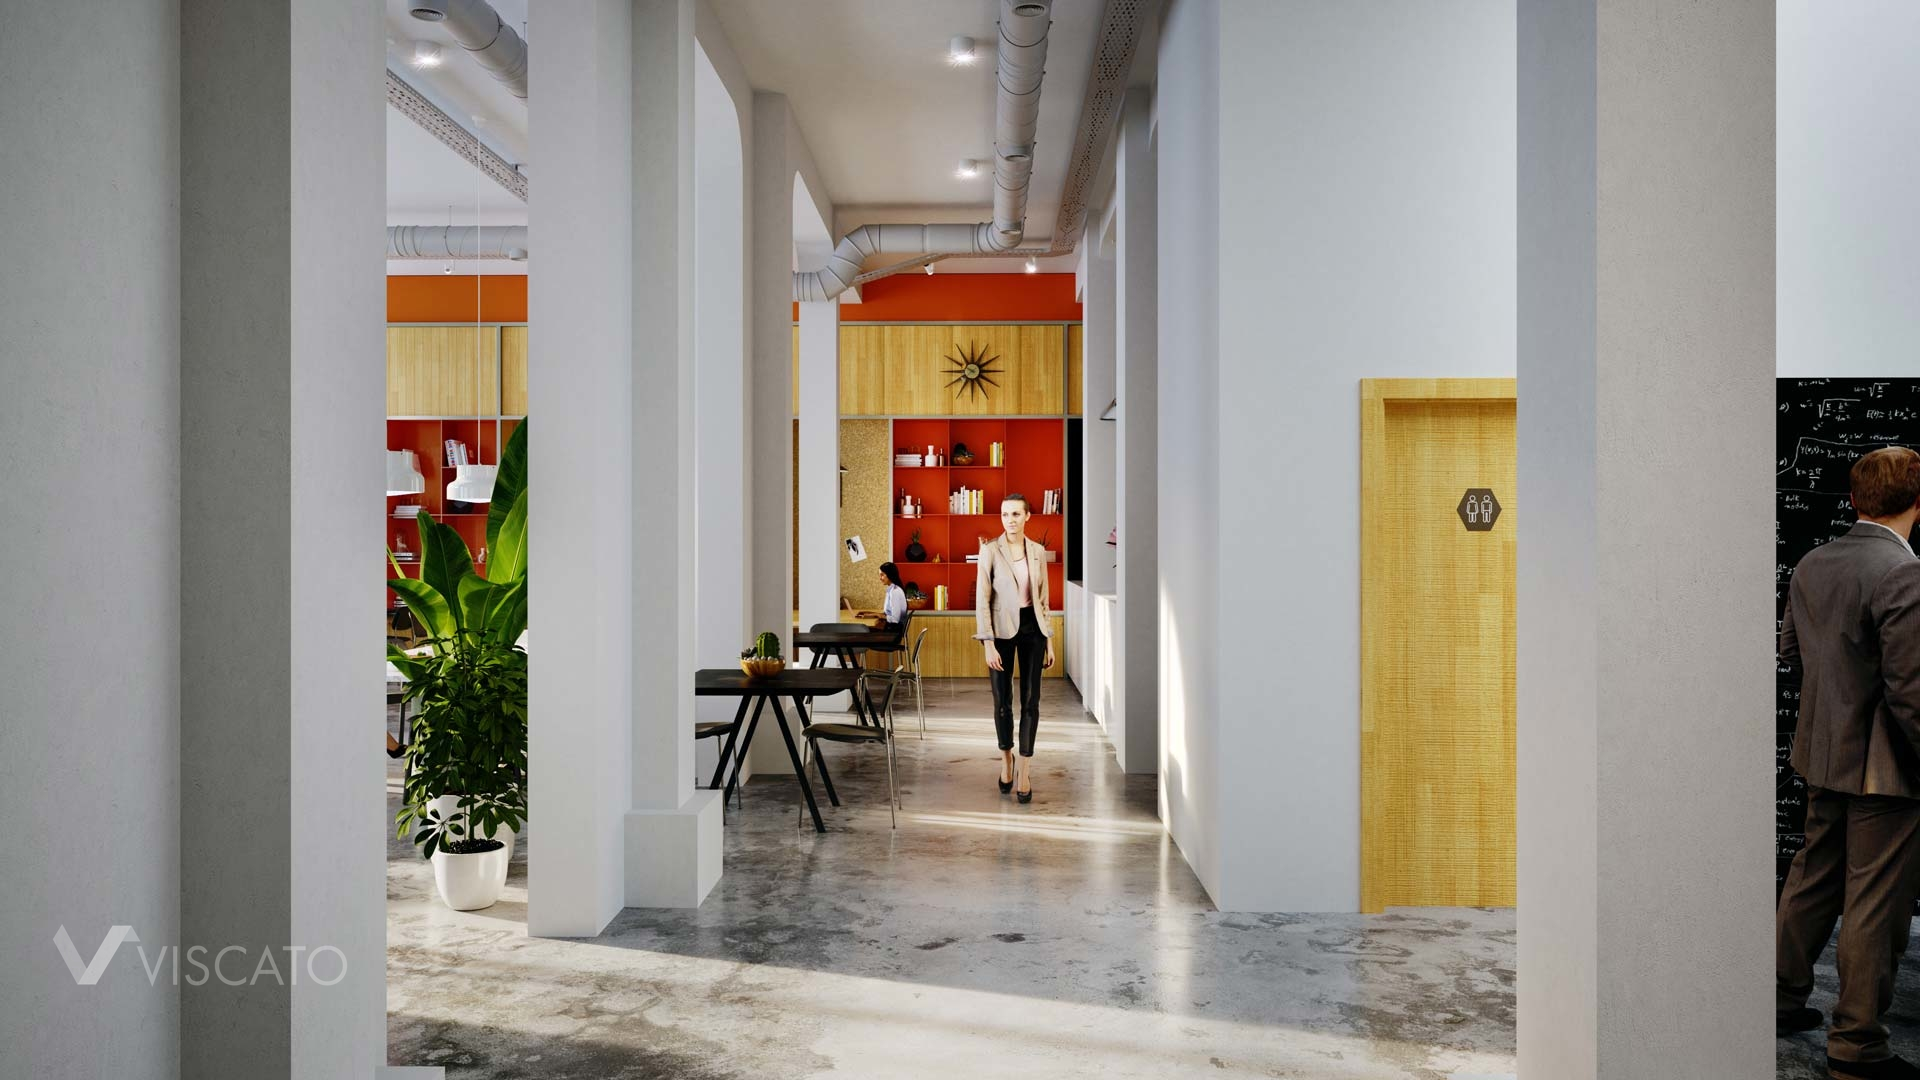 Hall in the modern office in Berlin, Viscato